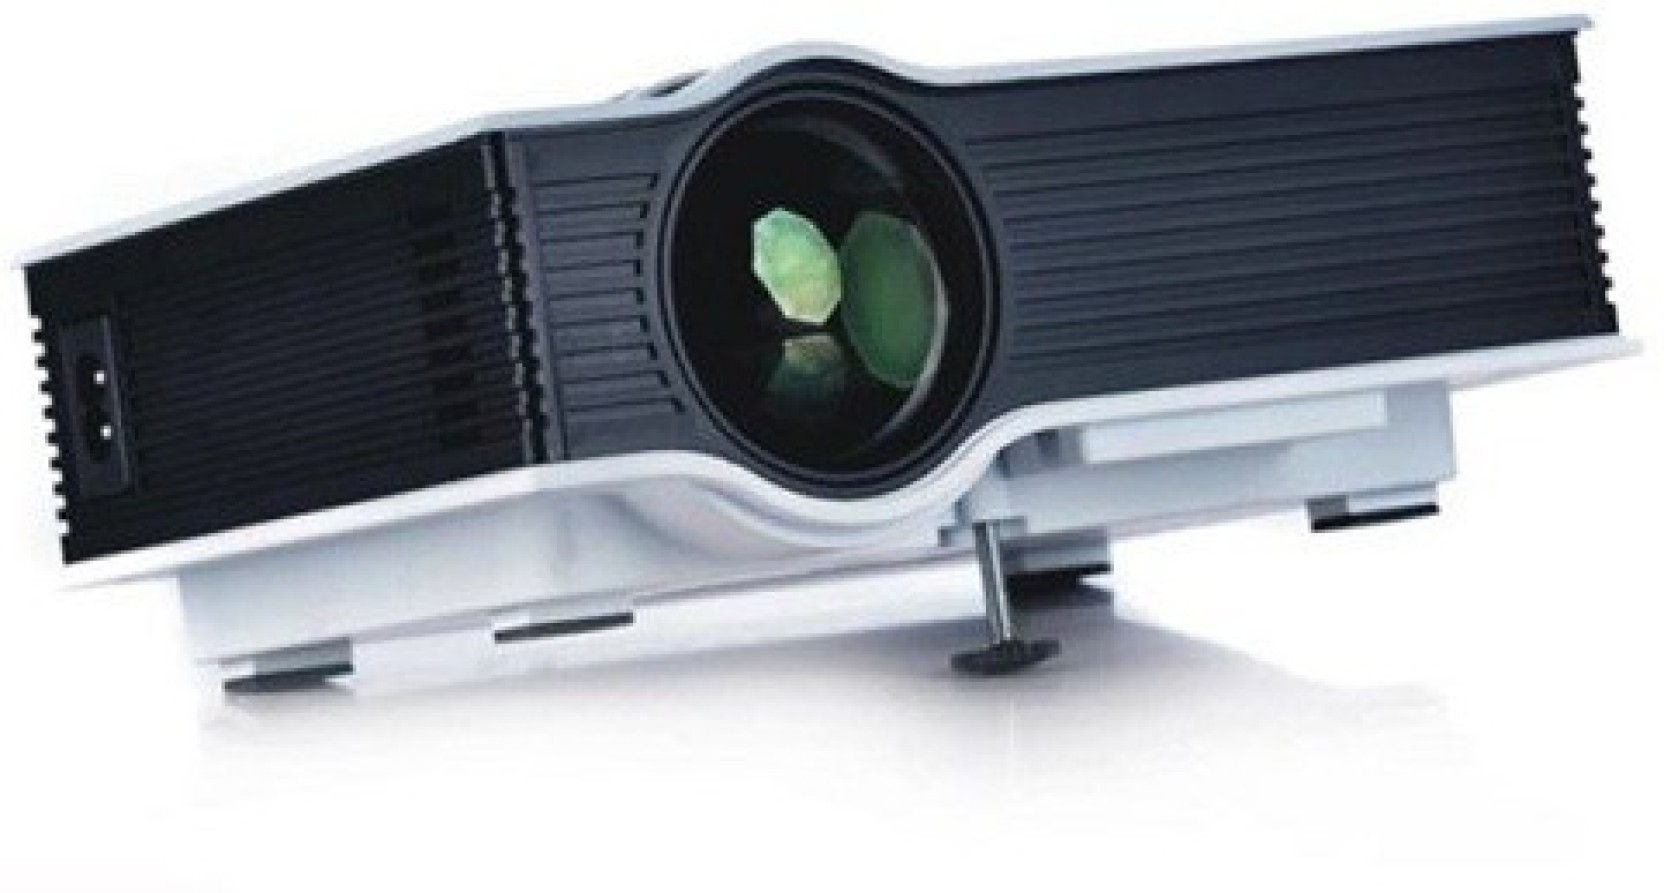 Unic Uc40 Portable Projector Price In India Buy Proyektor Led Mini On Offer